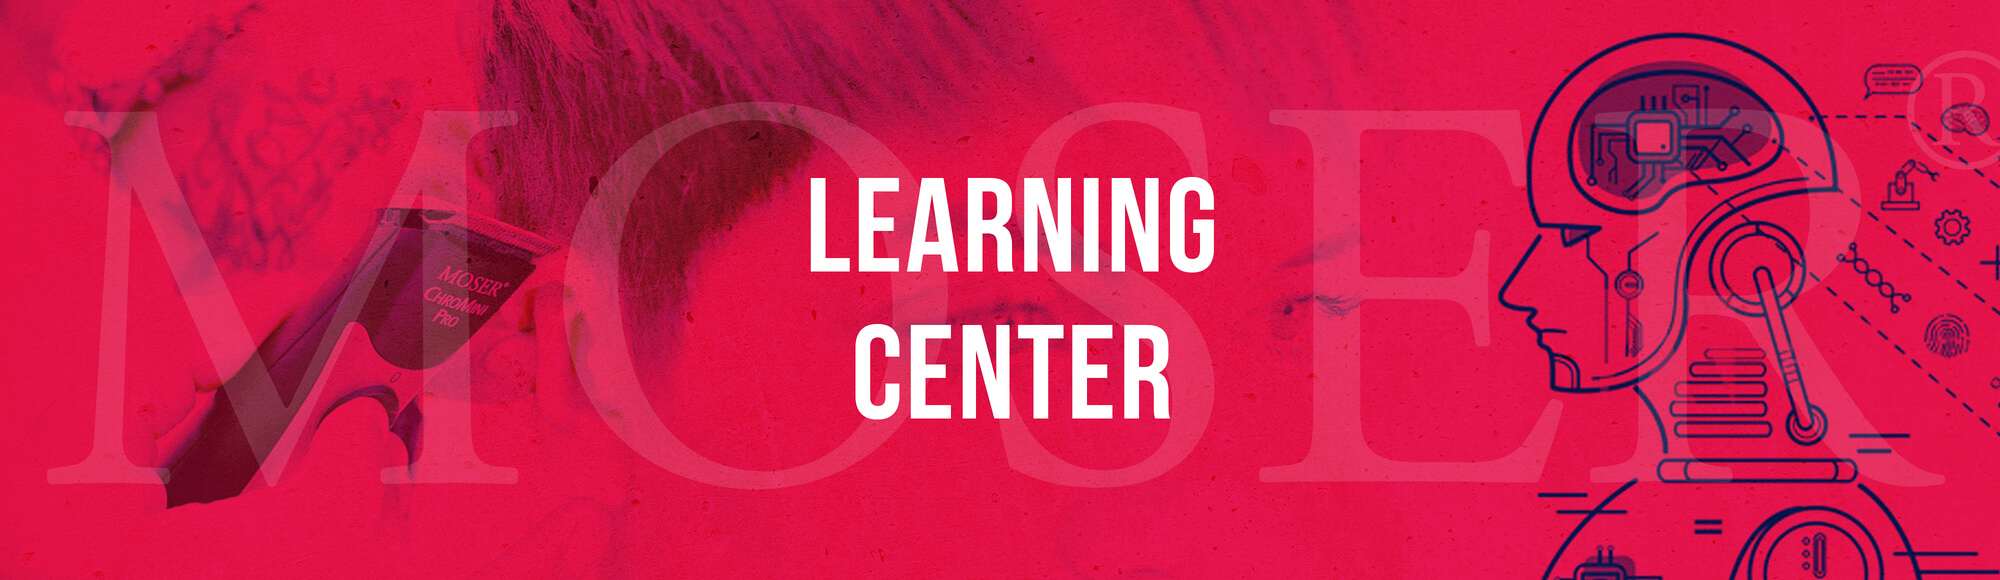 learning center.jpg